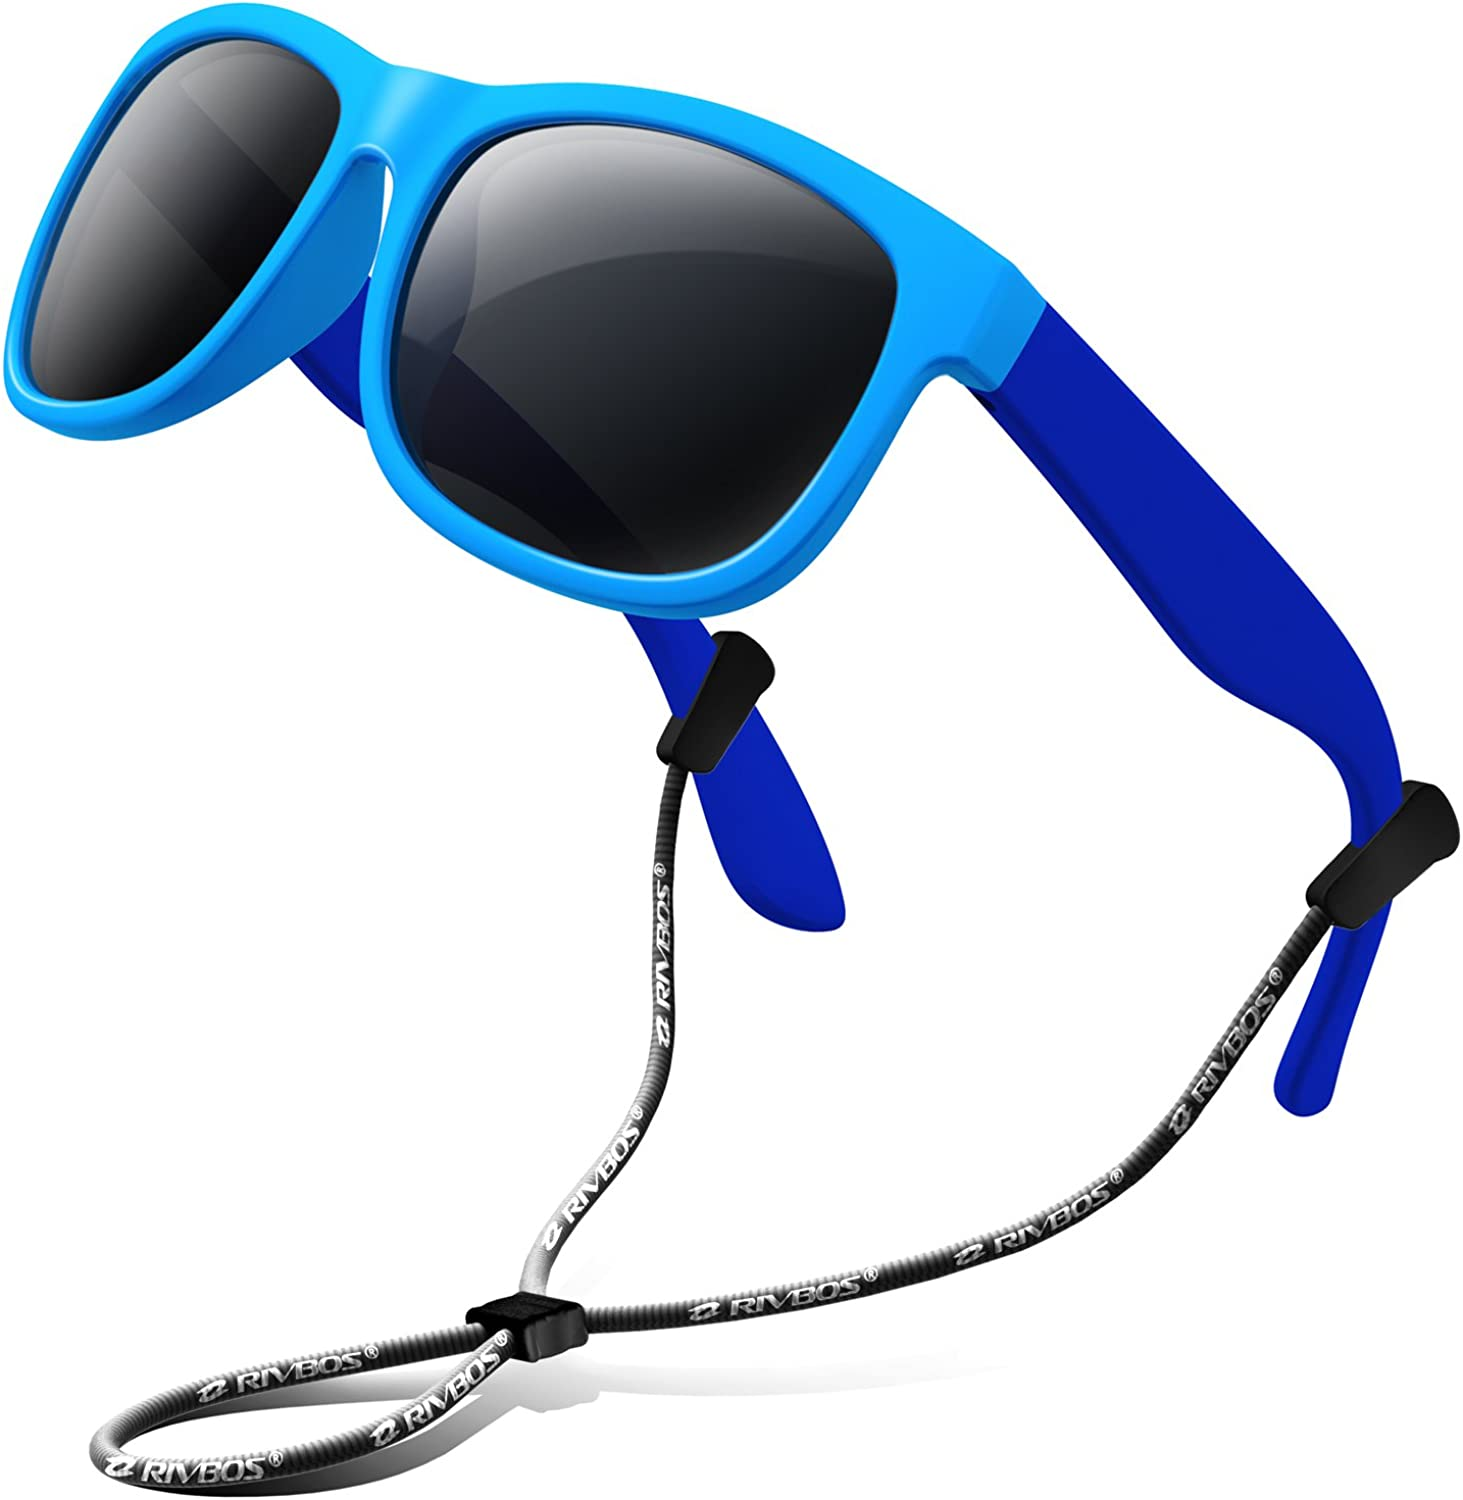 RIVBOS Kids Sunglasses Manufacturer direct delivery with Phoenix Mall Strap Polarized UV Flexib Protection